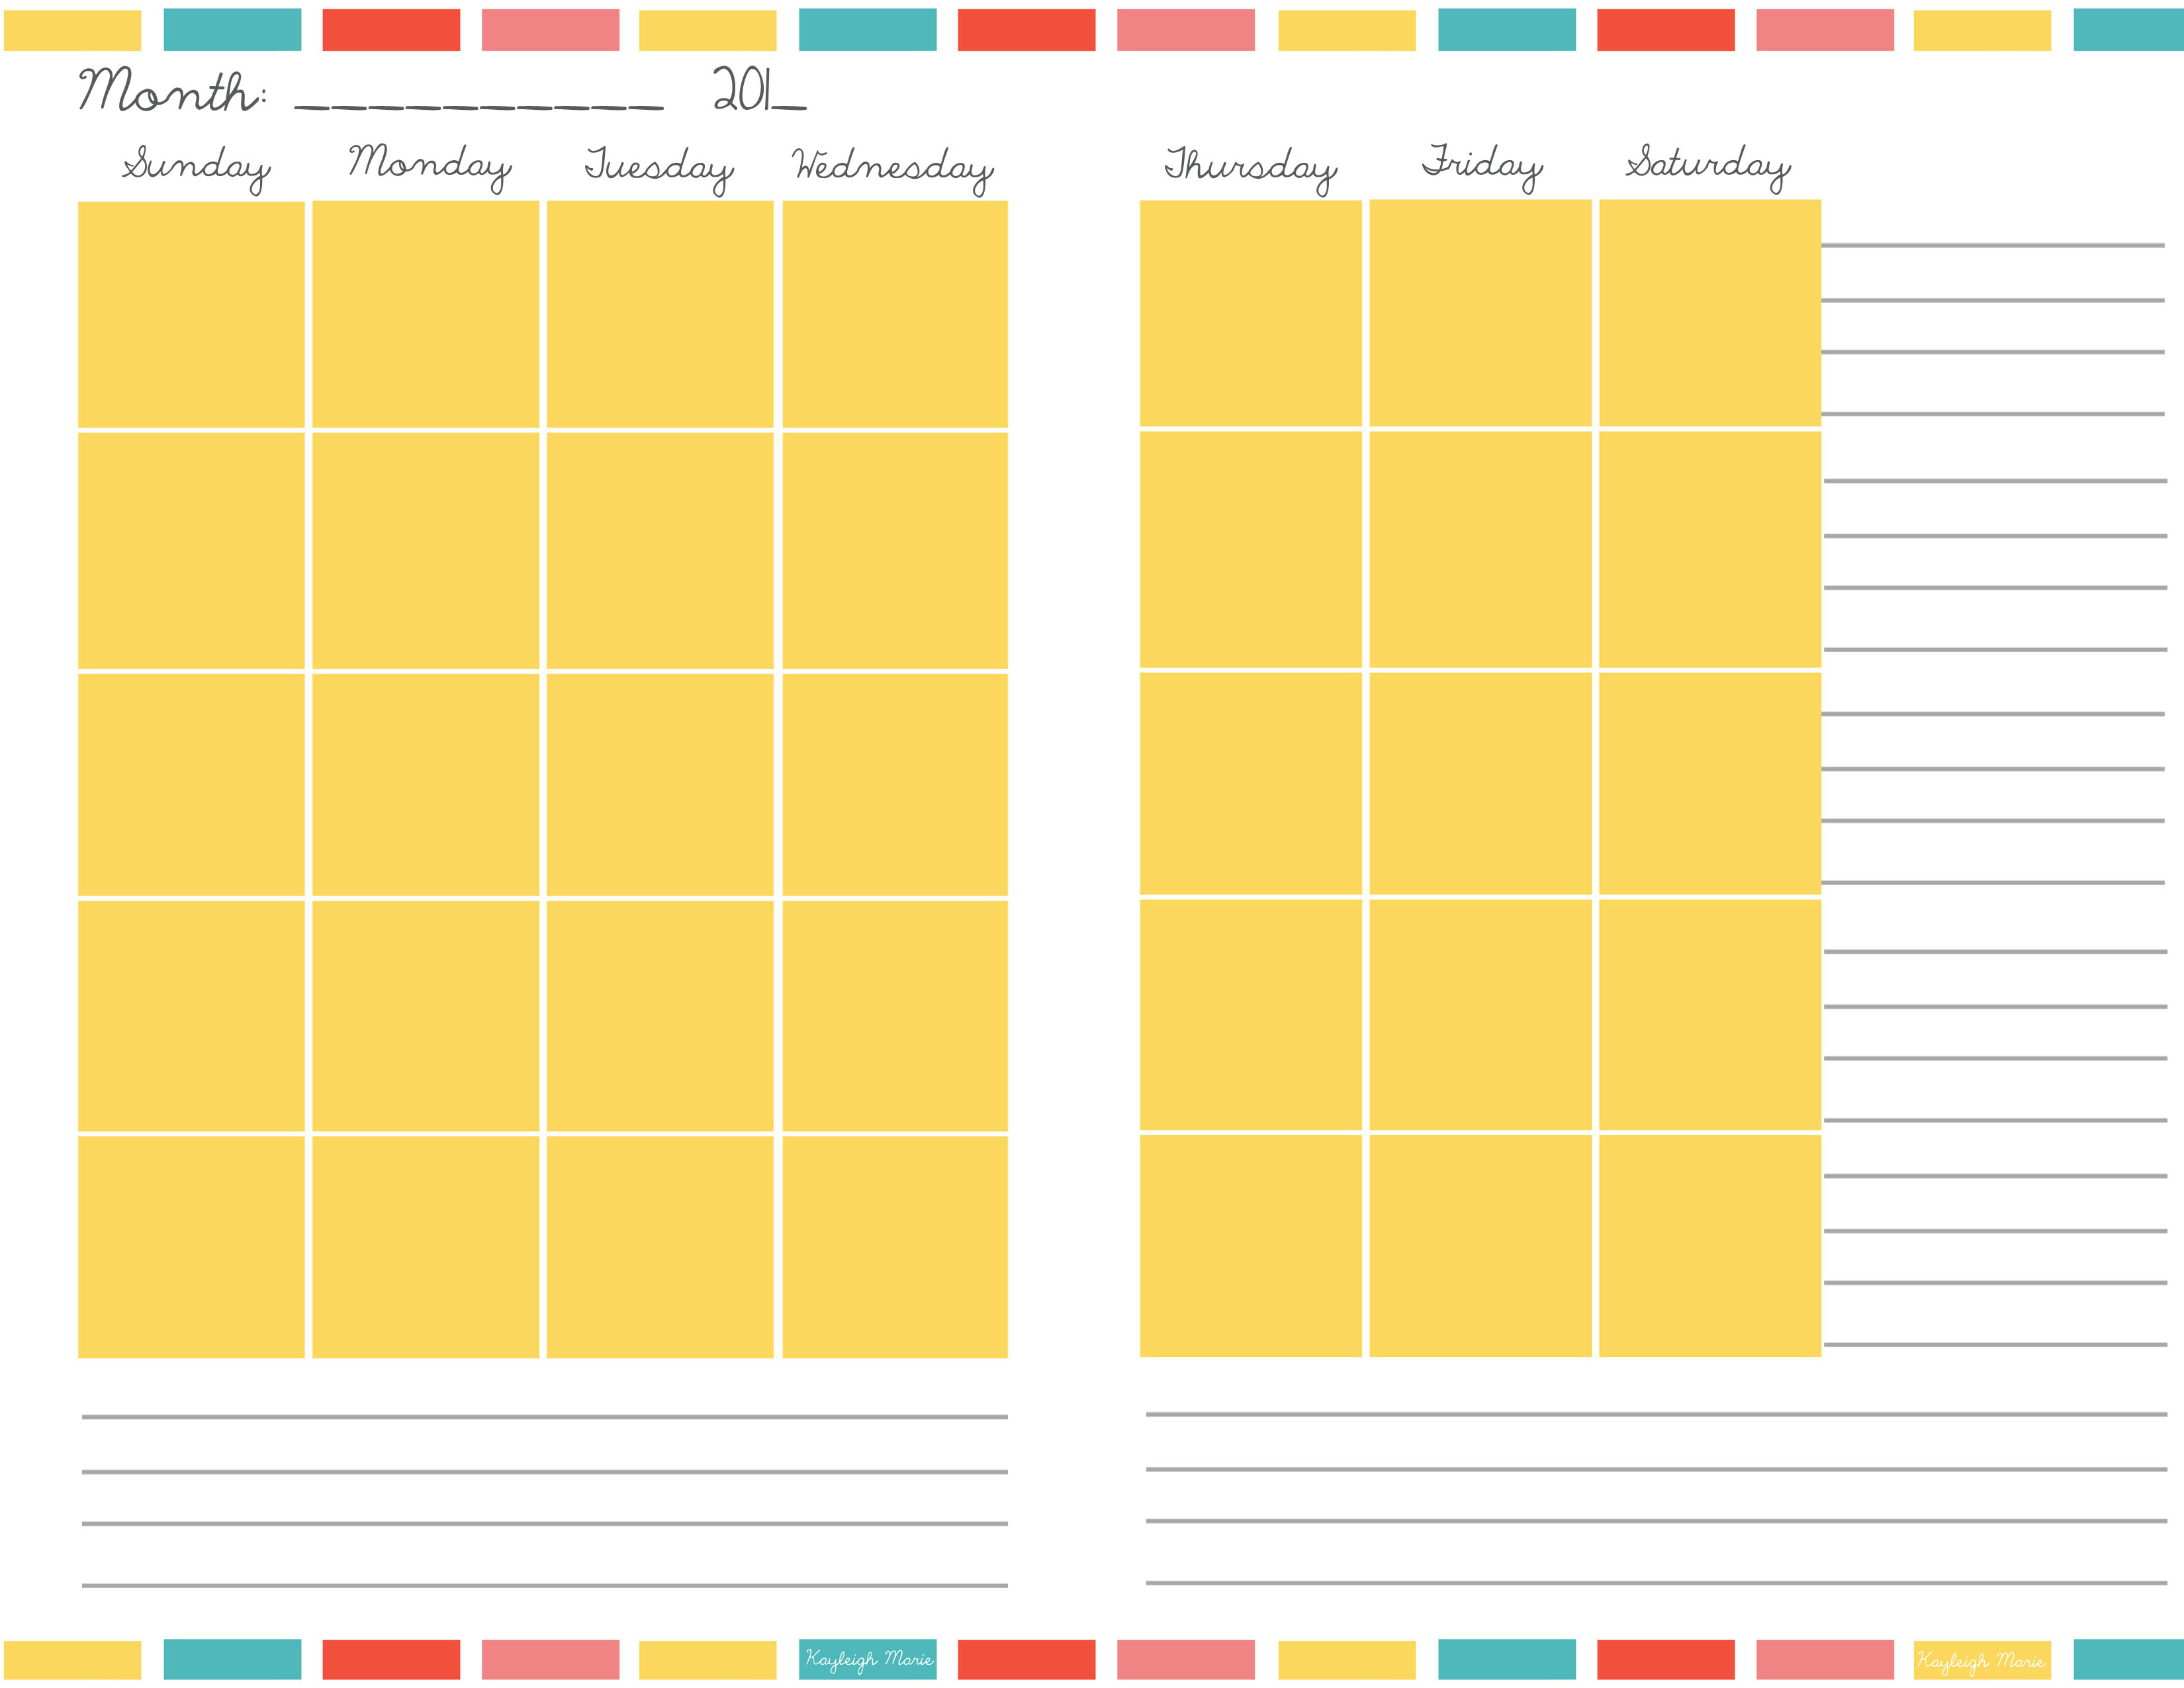 Free Printable Planners | Kayleigh Marie Textiles with Blank Monthly Planner Free Printable